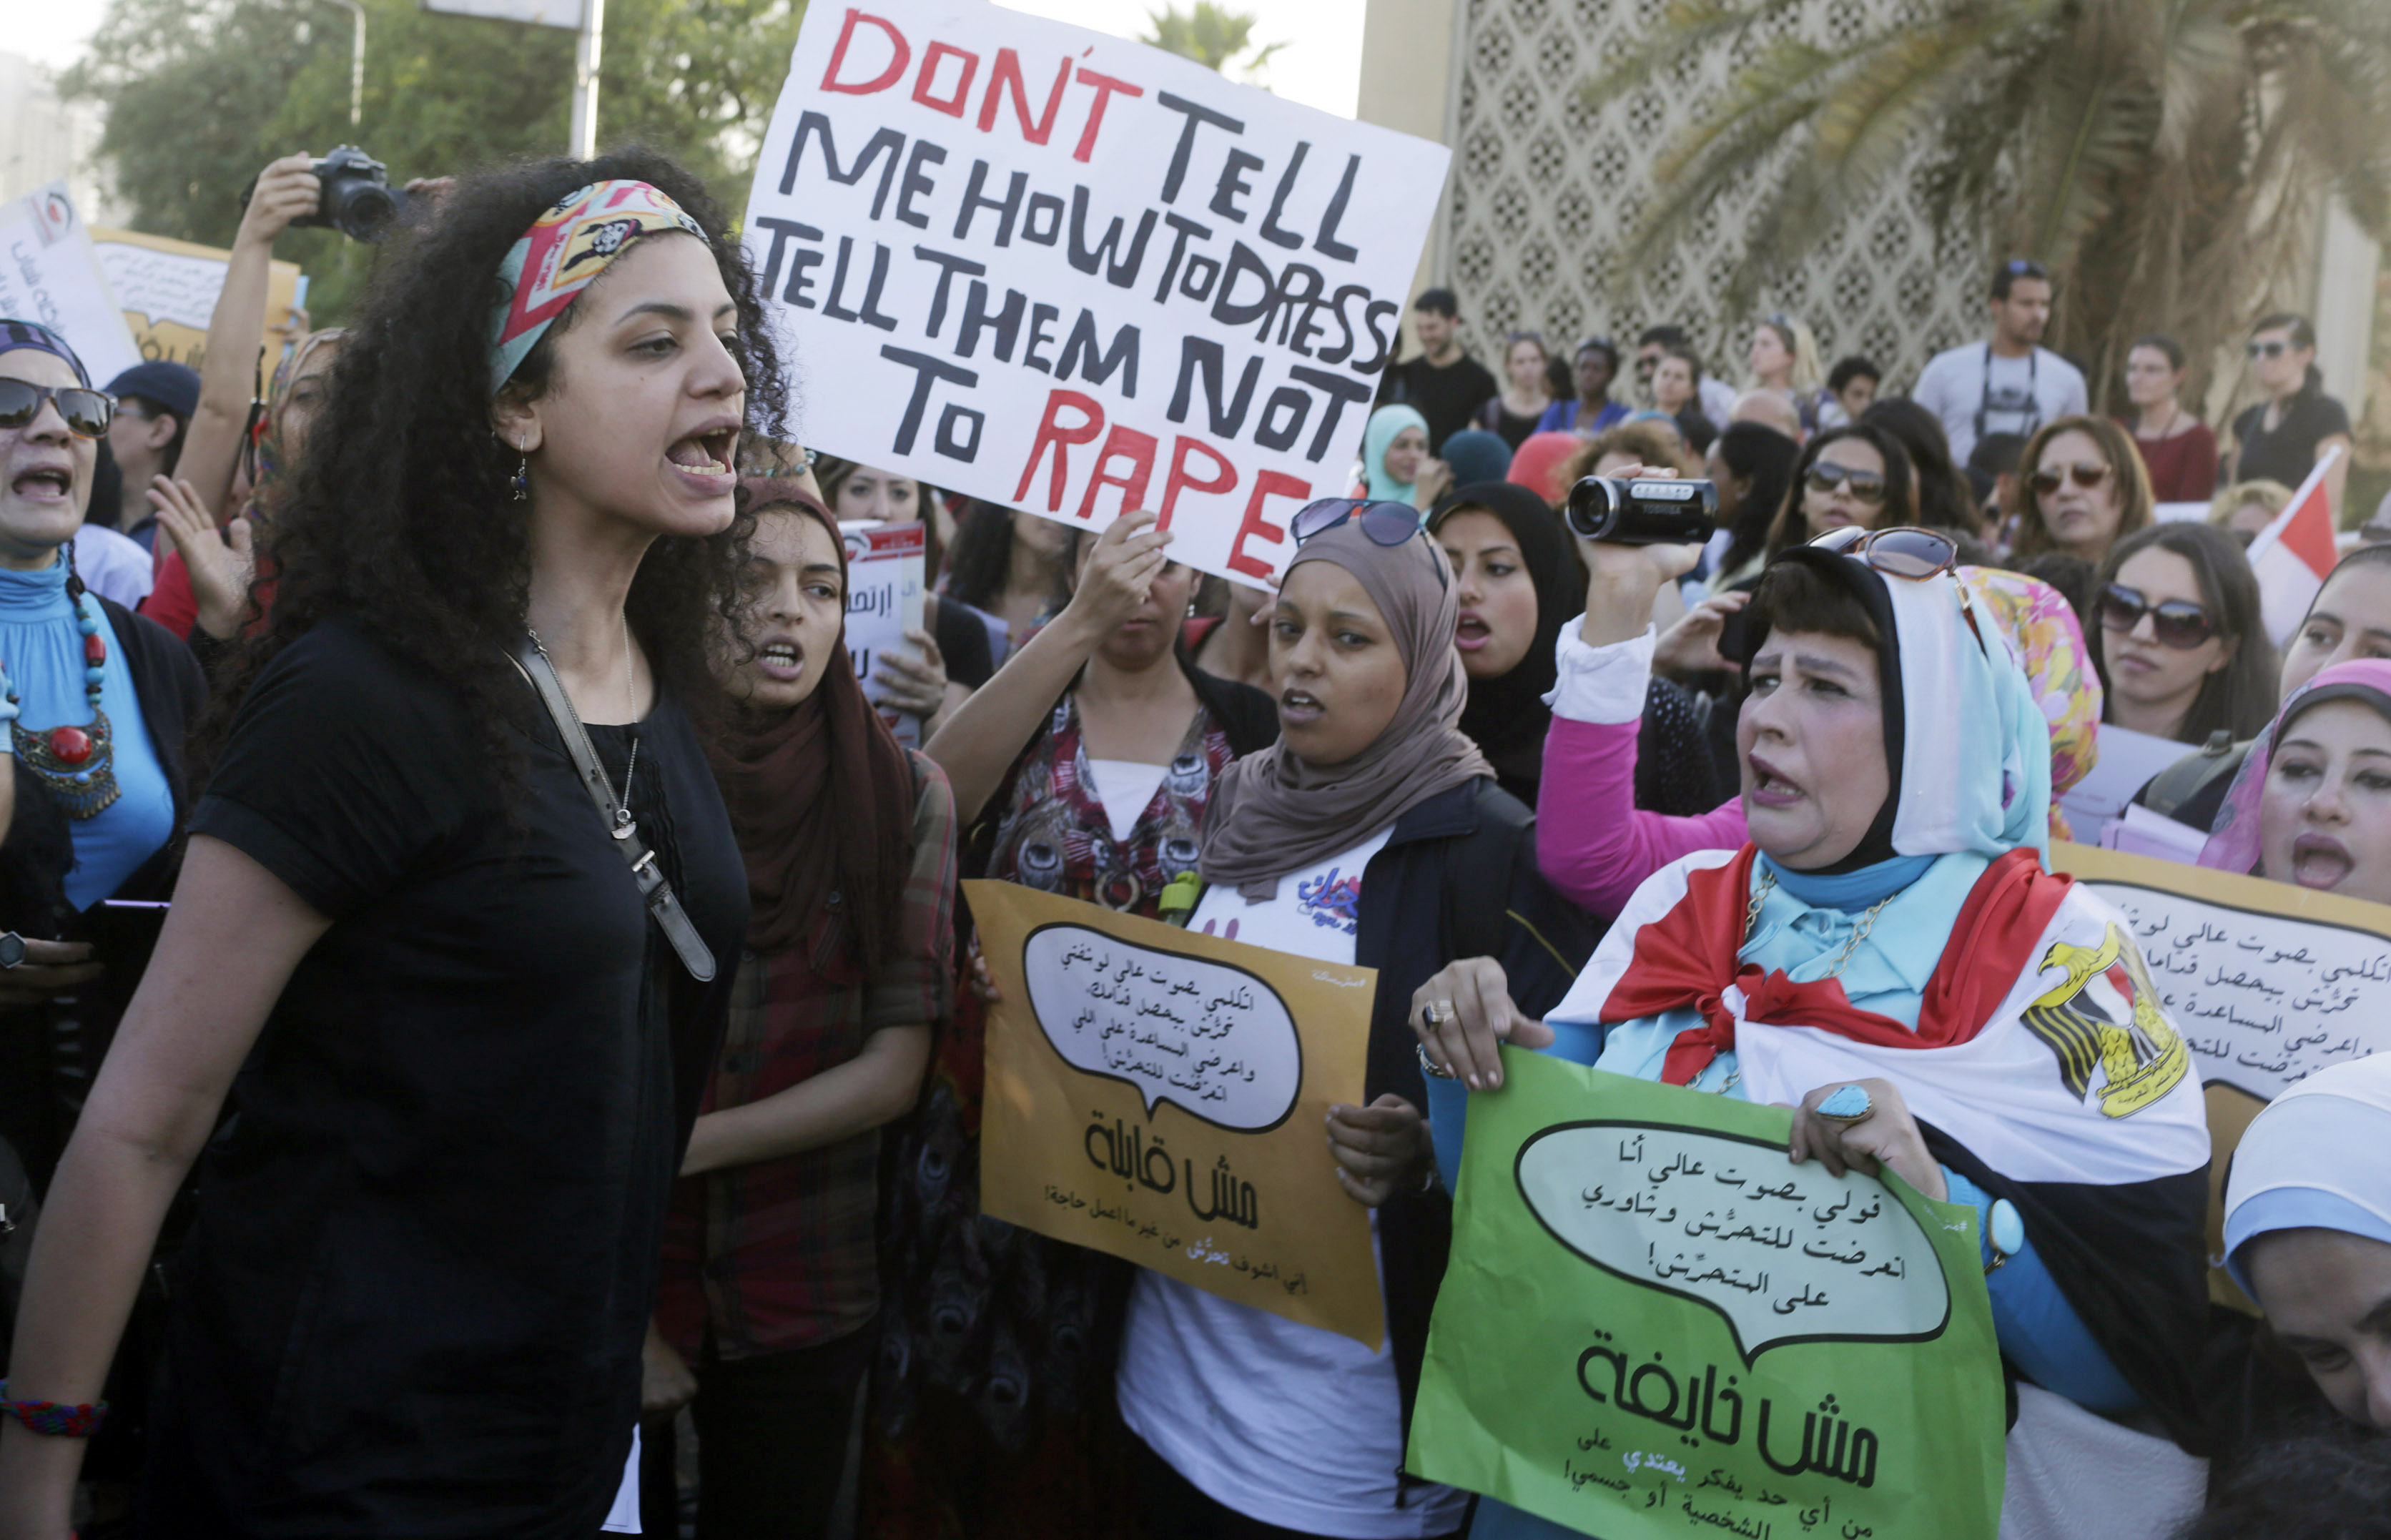 Women chant slogans as they gather to protest against sexual harassment in front of the opera house in Cairo June 14, 2014, after a woman was sexually assaulted by a mob during the June 8 celebrations marking the new president Abdel Fattah al-Sisi's inauguration in Tahrir square. Egypt has asked YouTube to remove a video showing the naked woman with injuries being dragged through the square after being sexually assaulted during the celebrations. Authorities have arrested seven men aged between 15 and 49 for sexually harassing women on the square after the posting of the video, which caused an uproar in local and international media. REUTERS/Asmaa Waguih (EGYPT - Tags: POLITICS CIVIL UNREST CRIME LAW) - RTR3TS3T